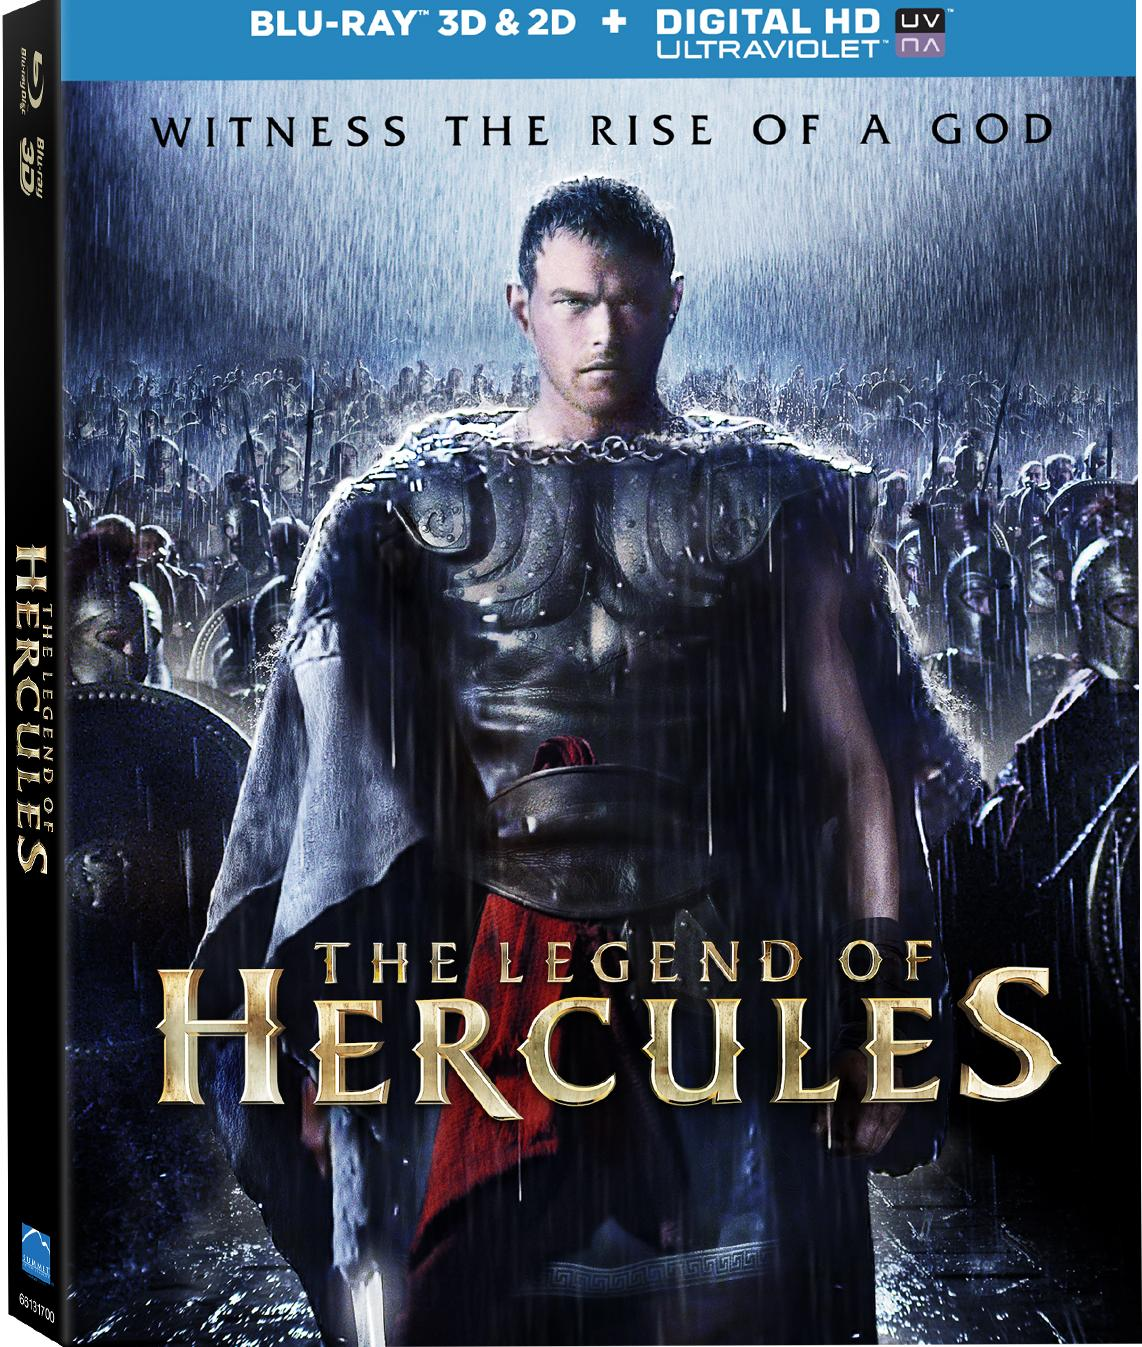 Warriors Gate Movie Review: A Mythic Hero Is Brought To Life In 'The Legend Of